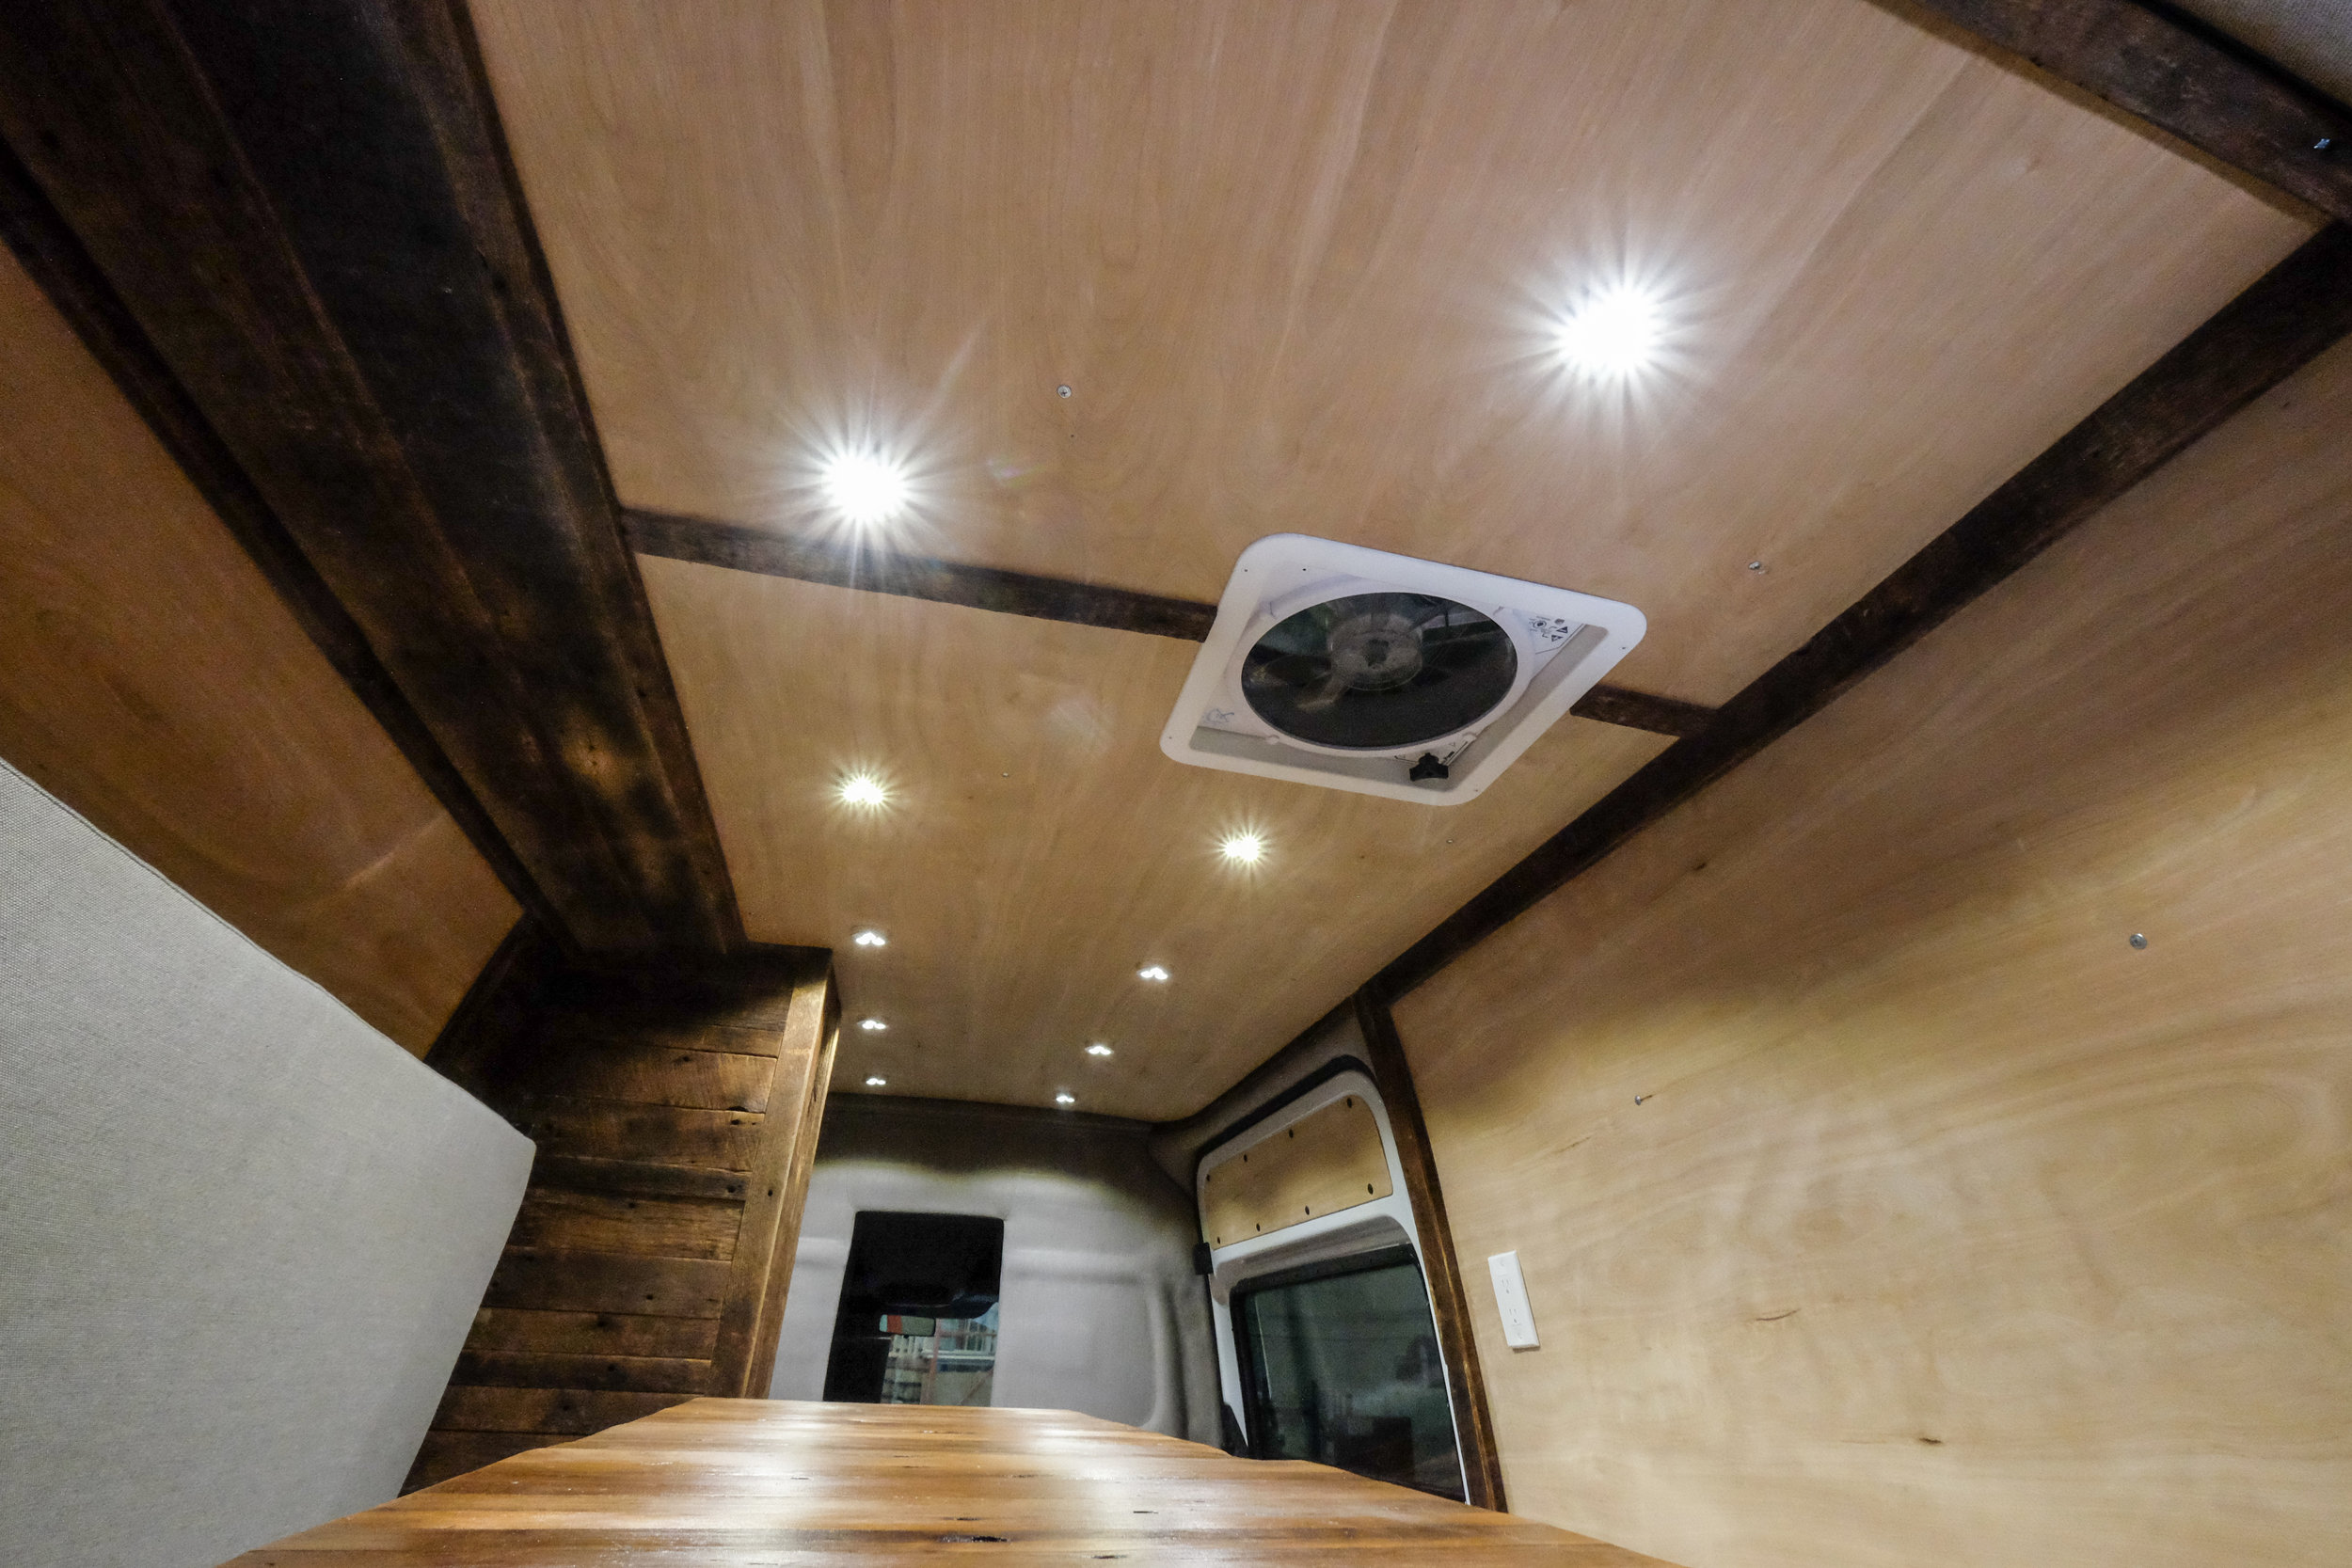 We've added extra insulation along with a diesel powered heater that's run on a thermostat to be even more efficient. All of this plus various custom woodwork makes this feel like your cabin away from home.